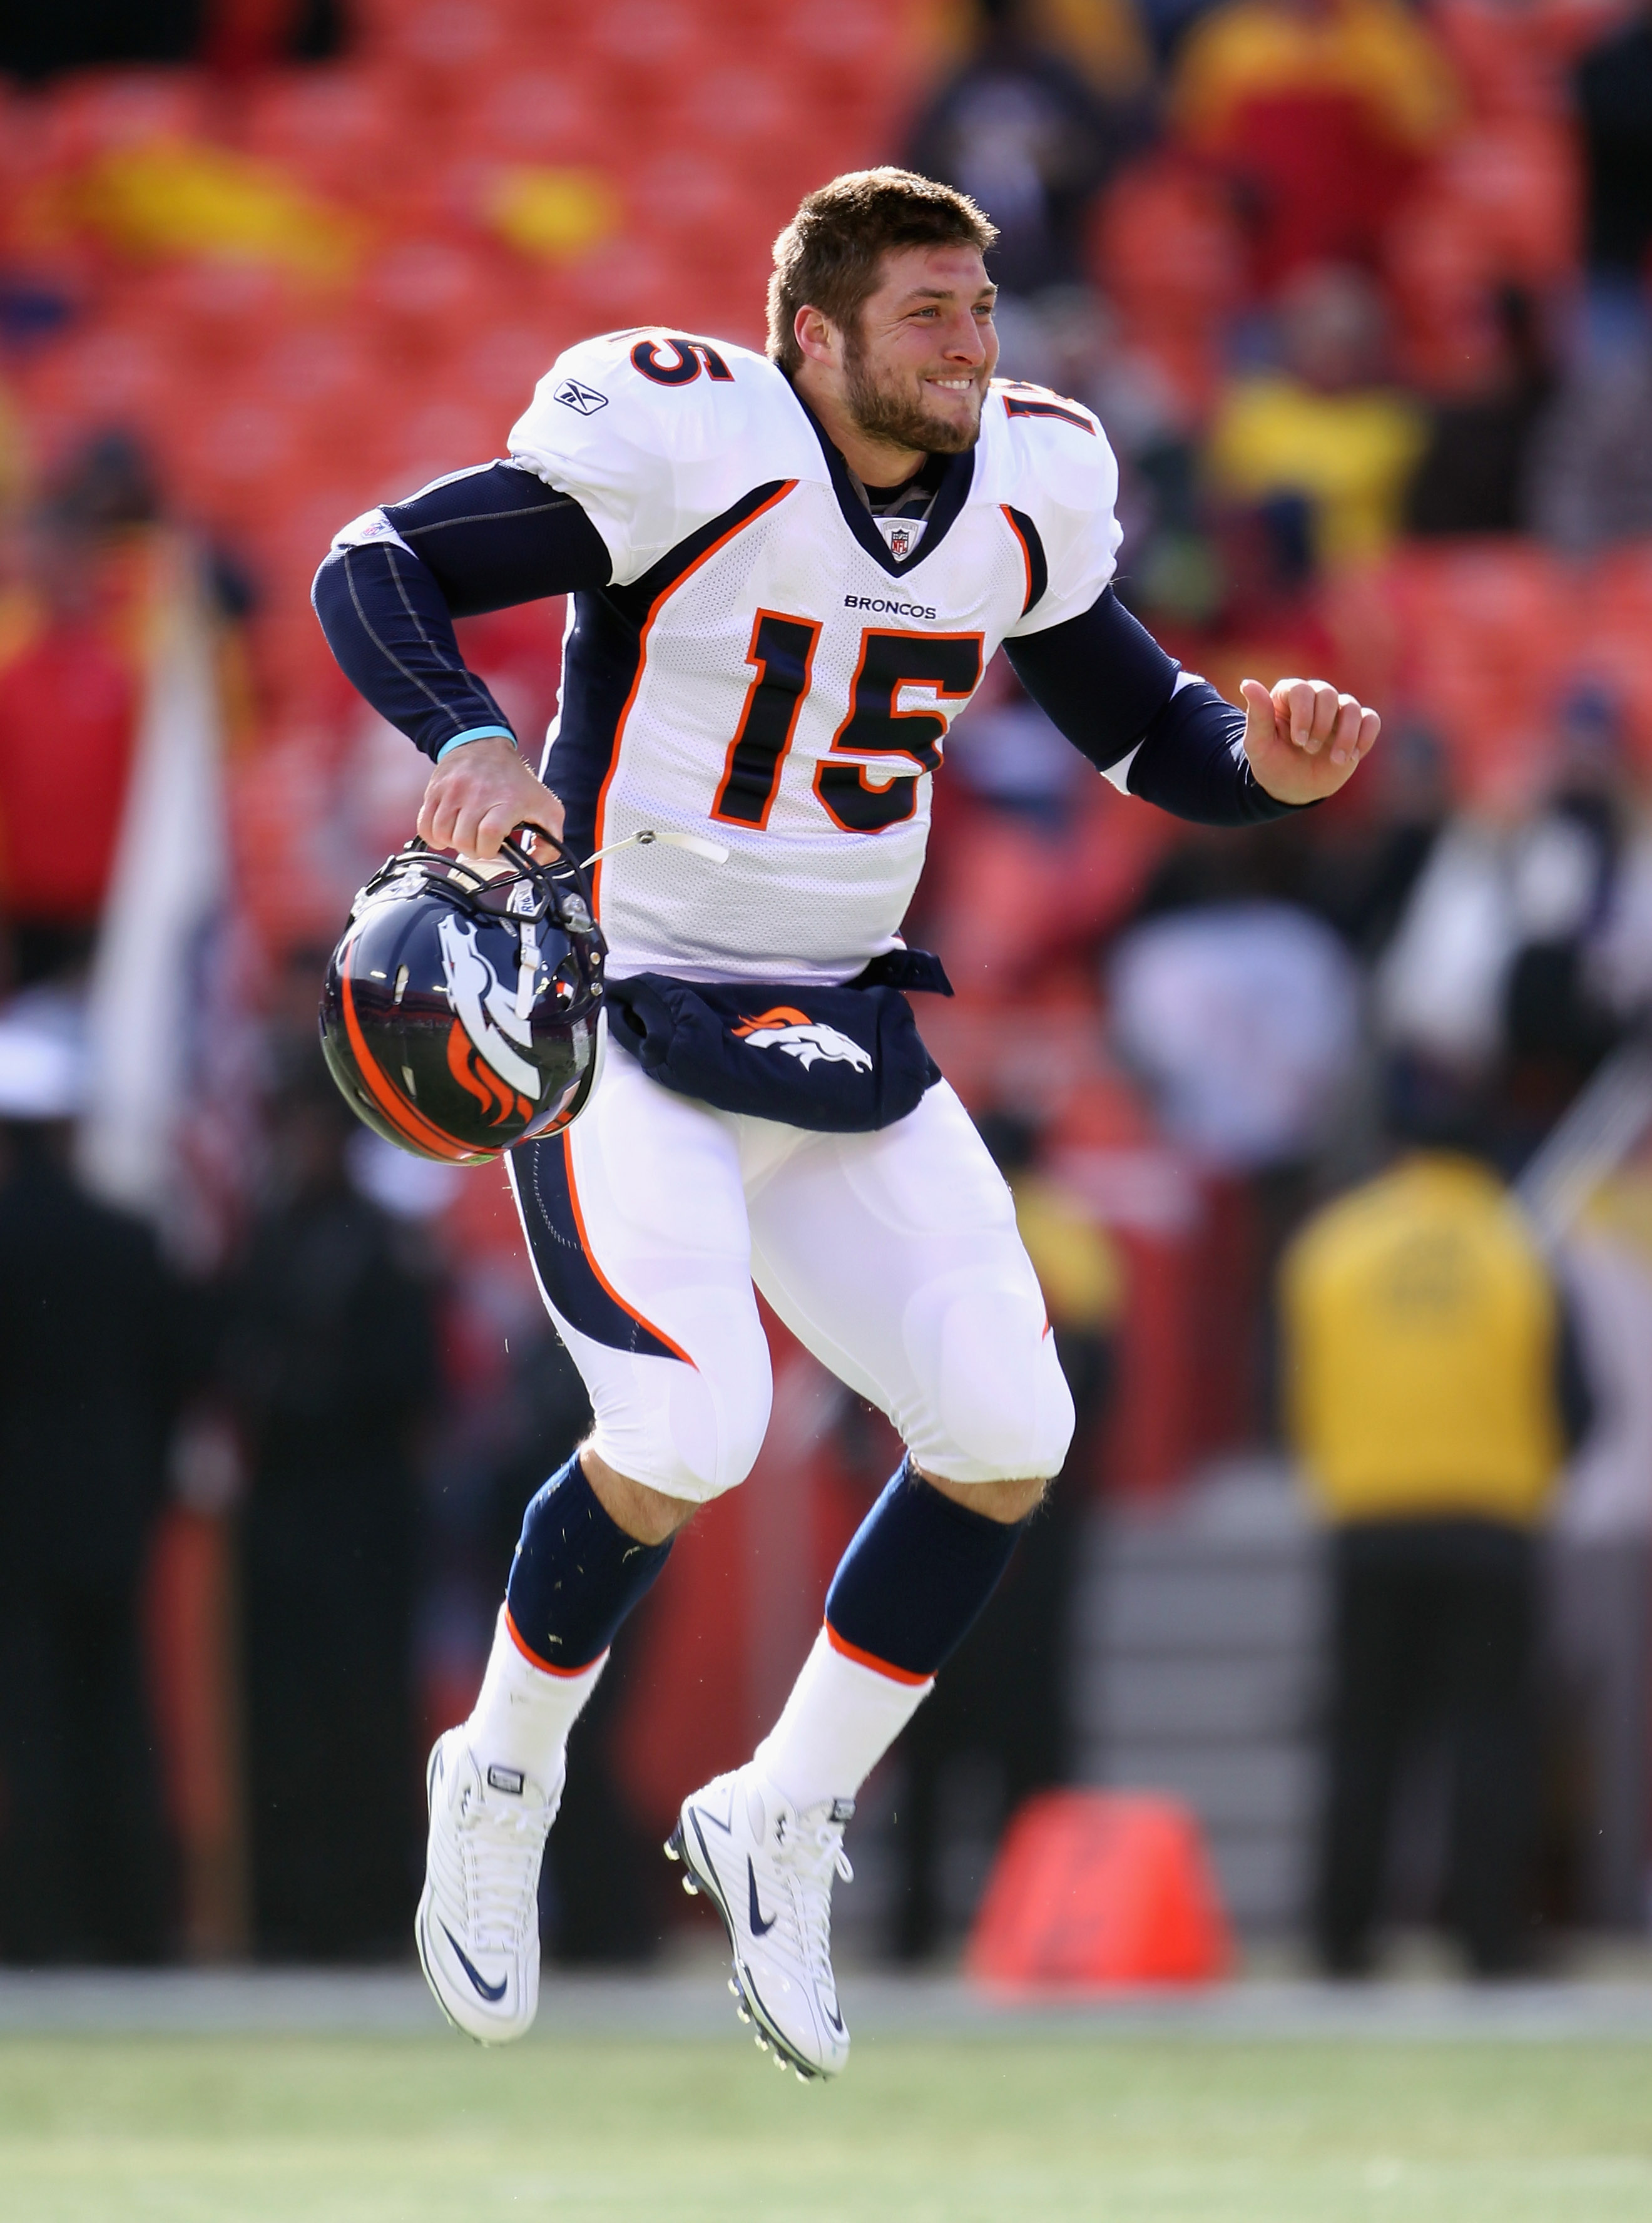 KANSAS CITY, MO - DECEMBER 05:  Quarterback Tim Tebow #15 of the Denver Broncos during warm-ups prior to the start of the game against the Kansas City Chiefs on December 5, 2010 at Arrowhead Stadium in Kansas City, Missouri.  (Photo by Jamie Squire/Getty